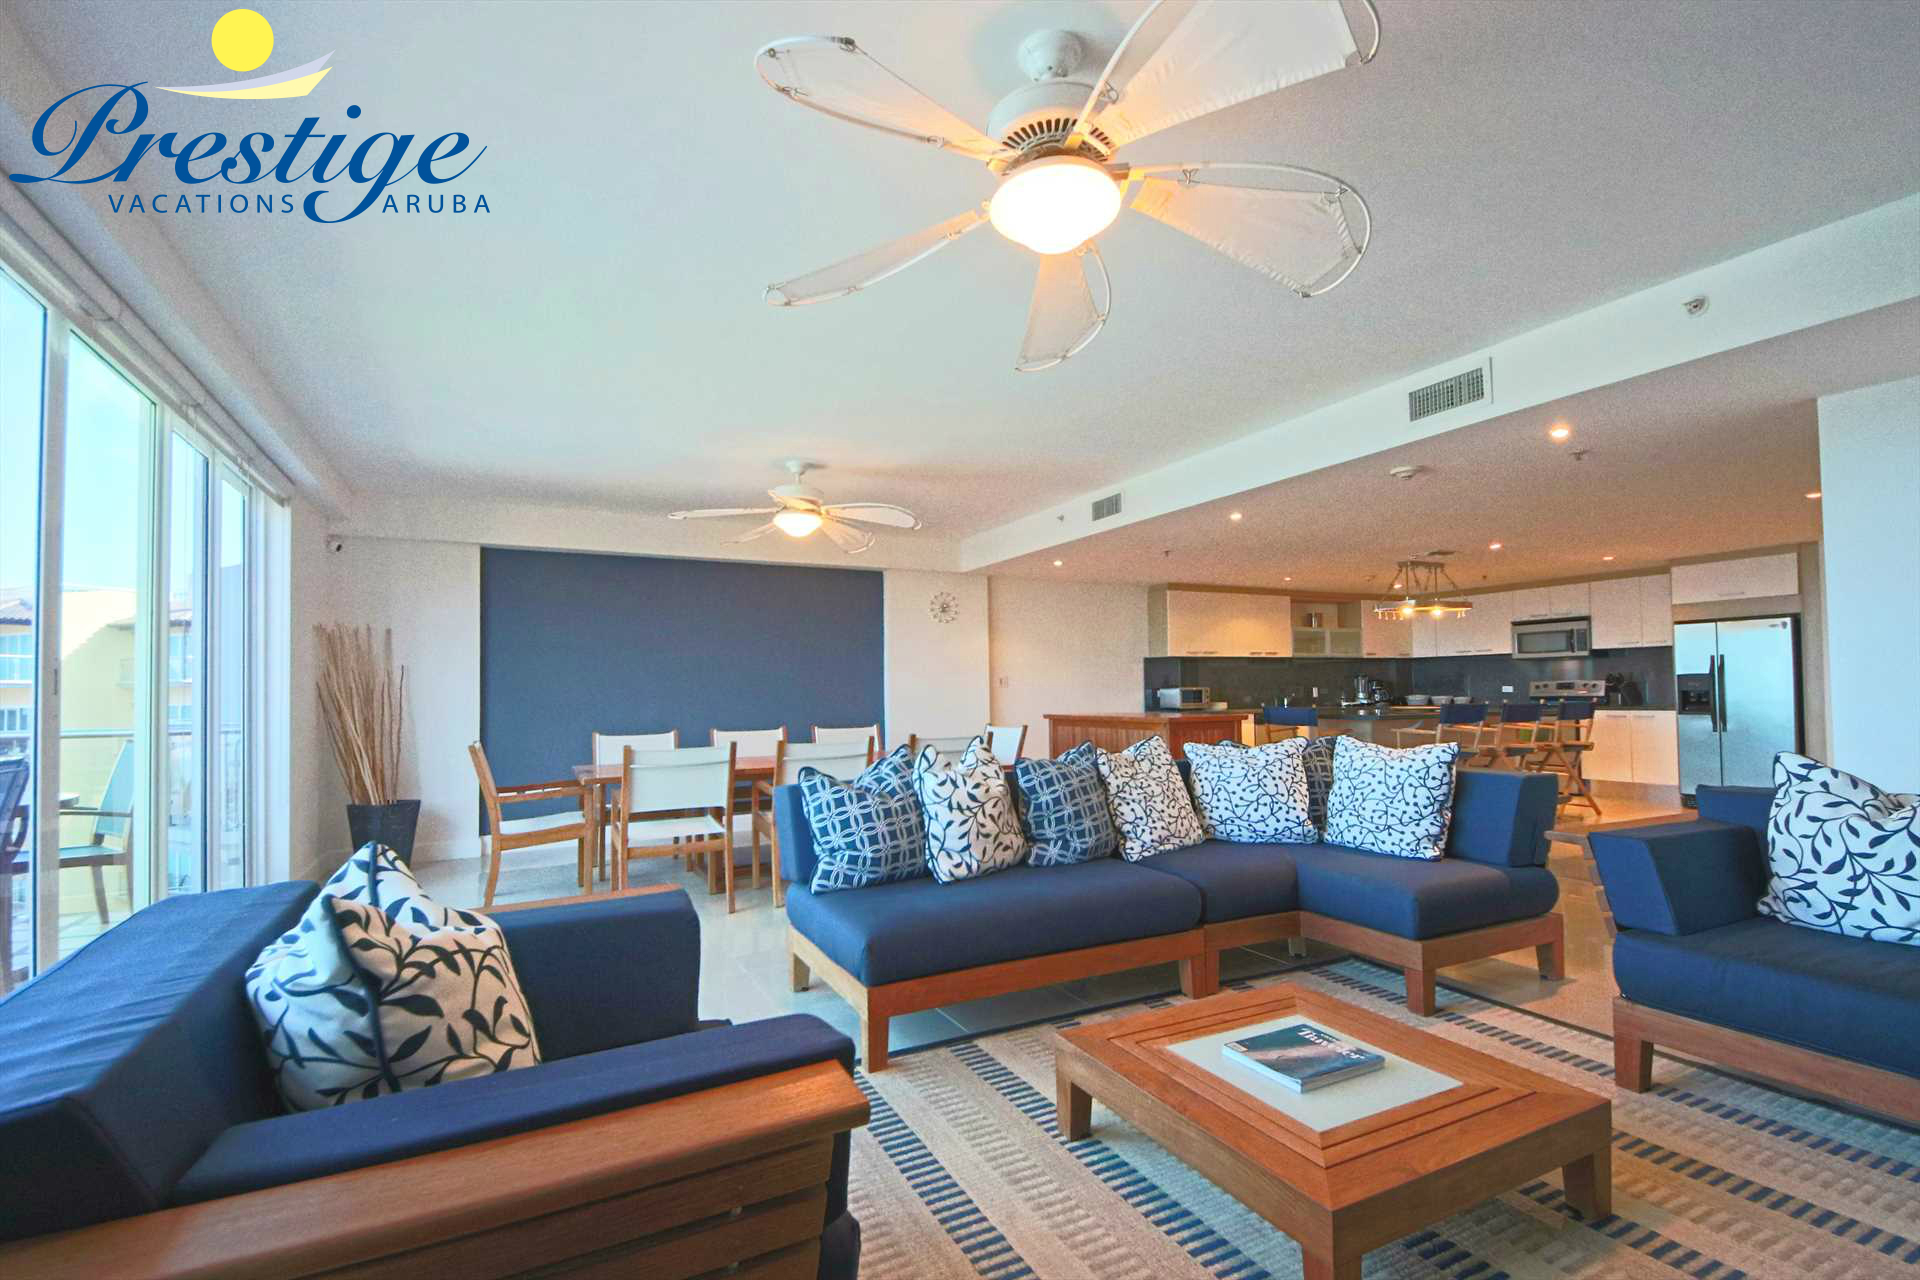 The spacious living area on the main floor of this 3-level vacation rental